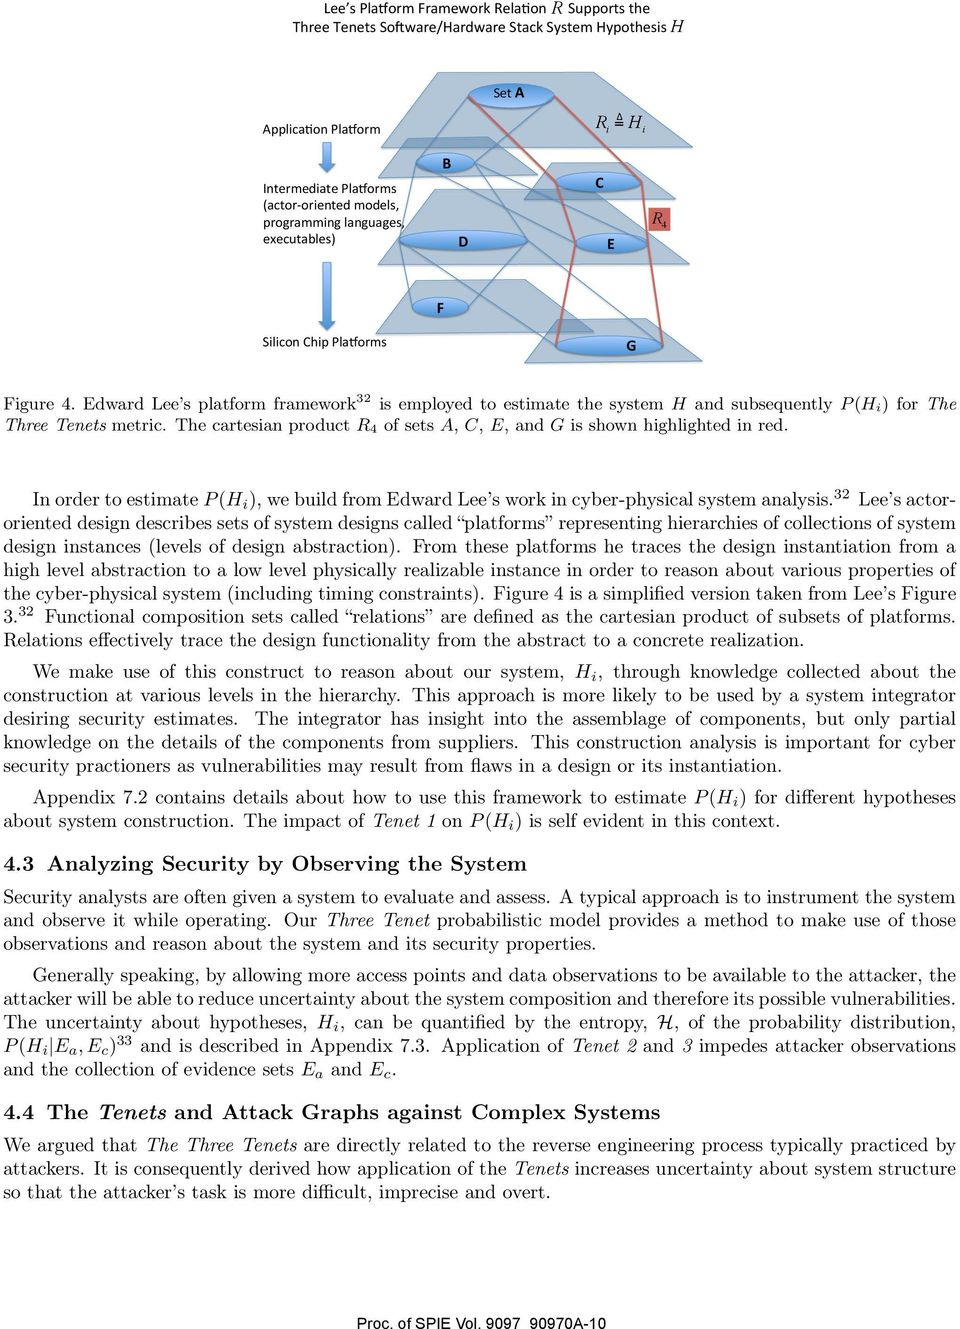 Edward Lee s platform framework 32 is employed to estimate the system H and subsequently P (H i) for The Three Tenets metric.